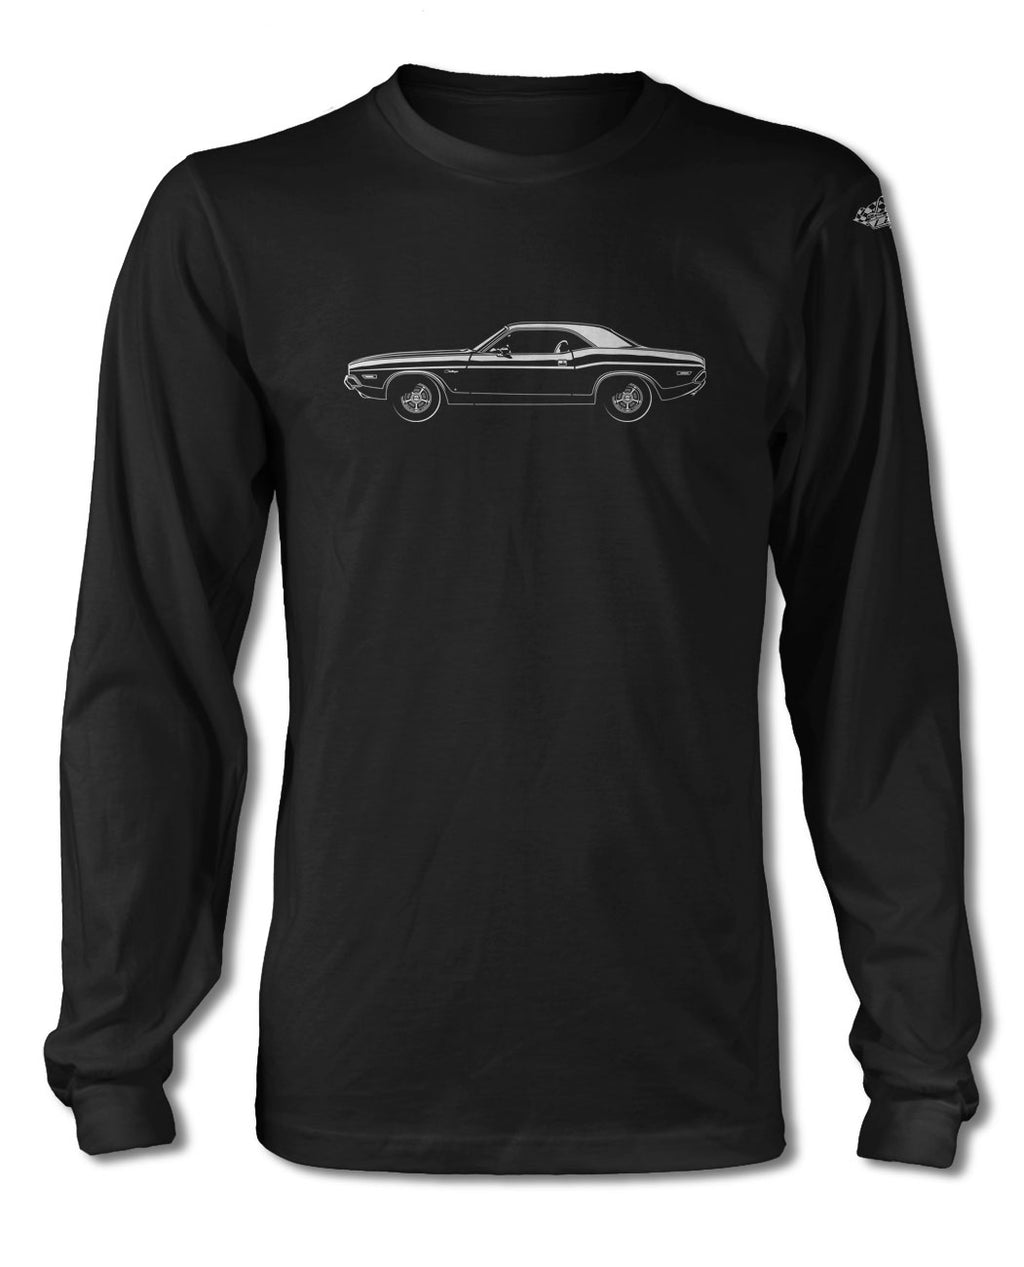 1971 Dodge Challenger Base Coupe T-Shirt - Long Sleeves - Side View